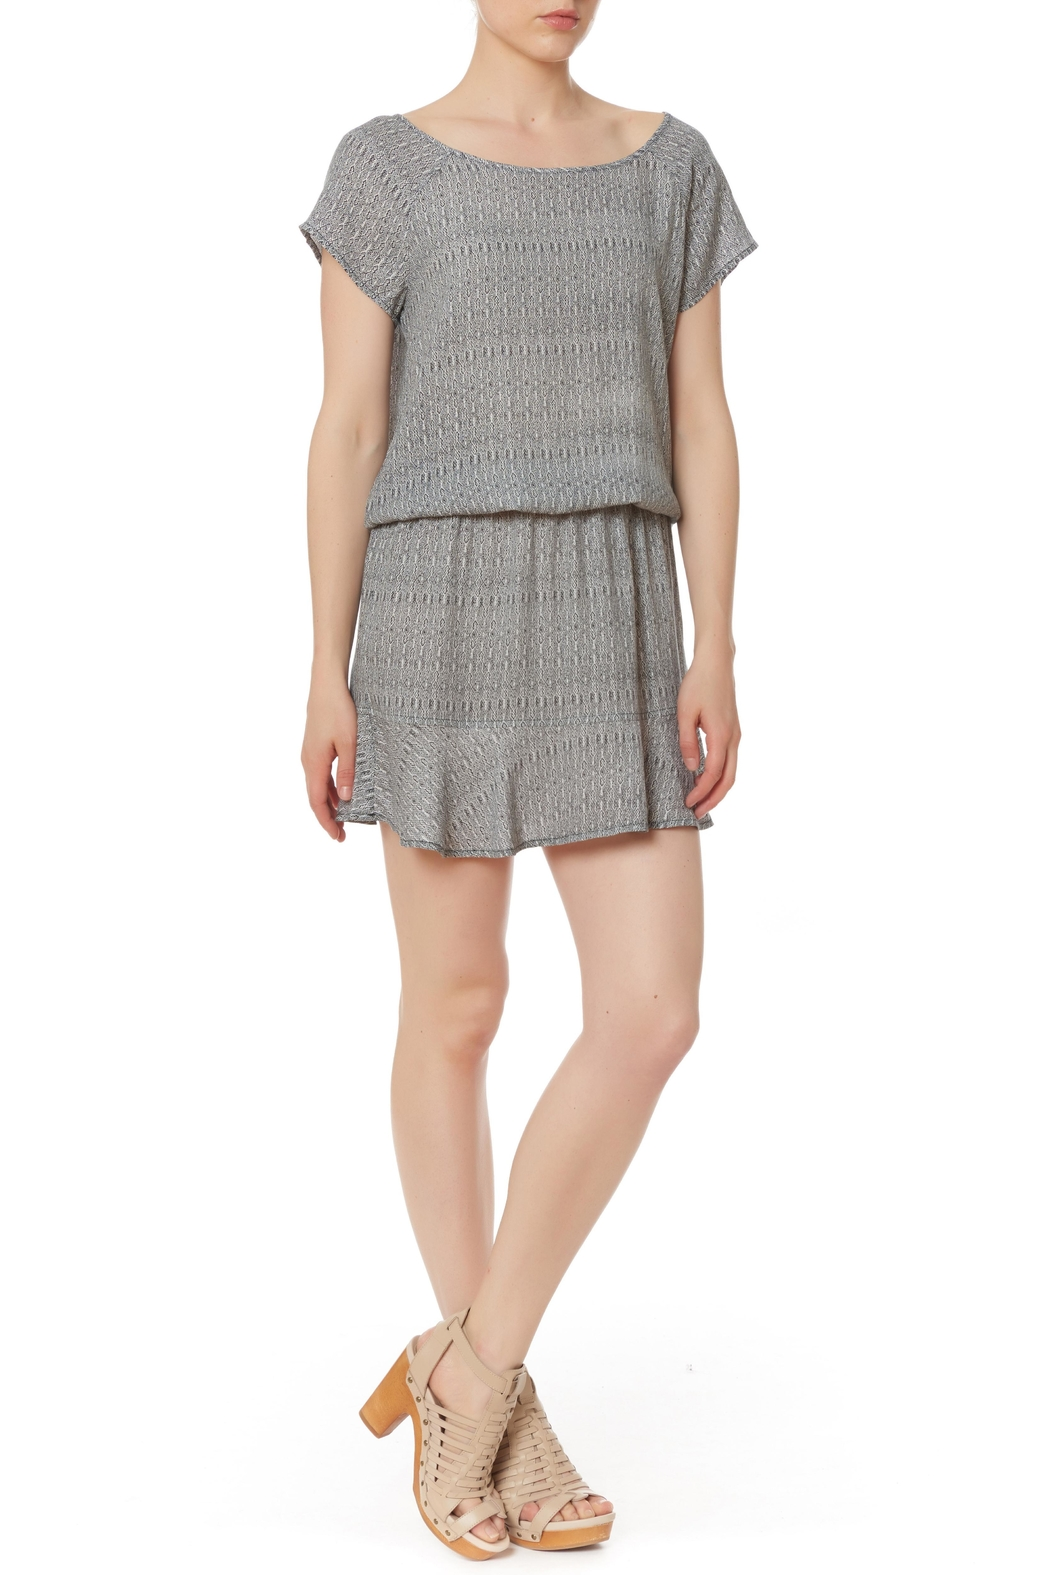 Soft Joie Quora Dress - Front Cropped Image